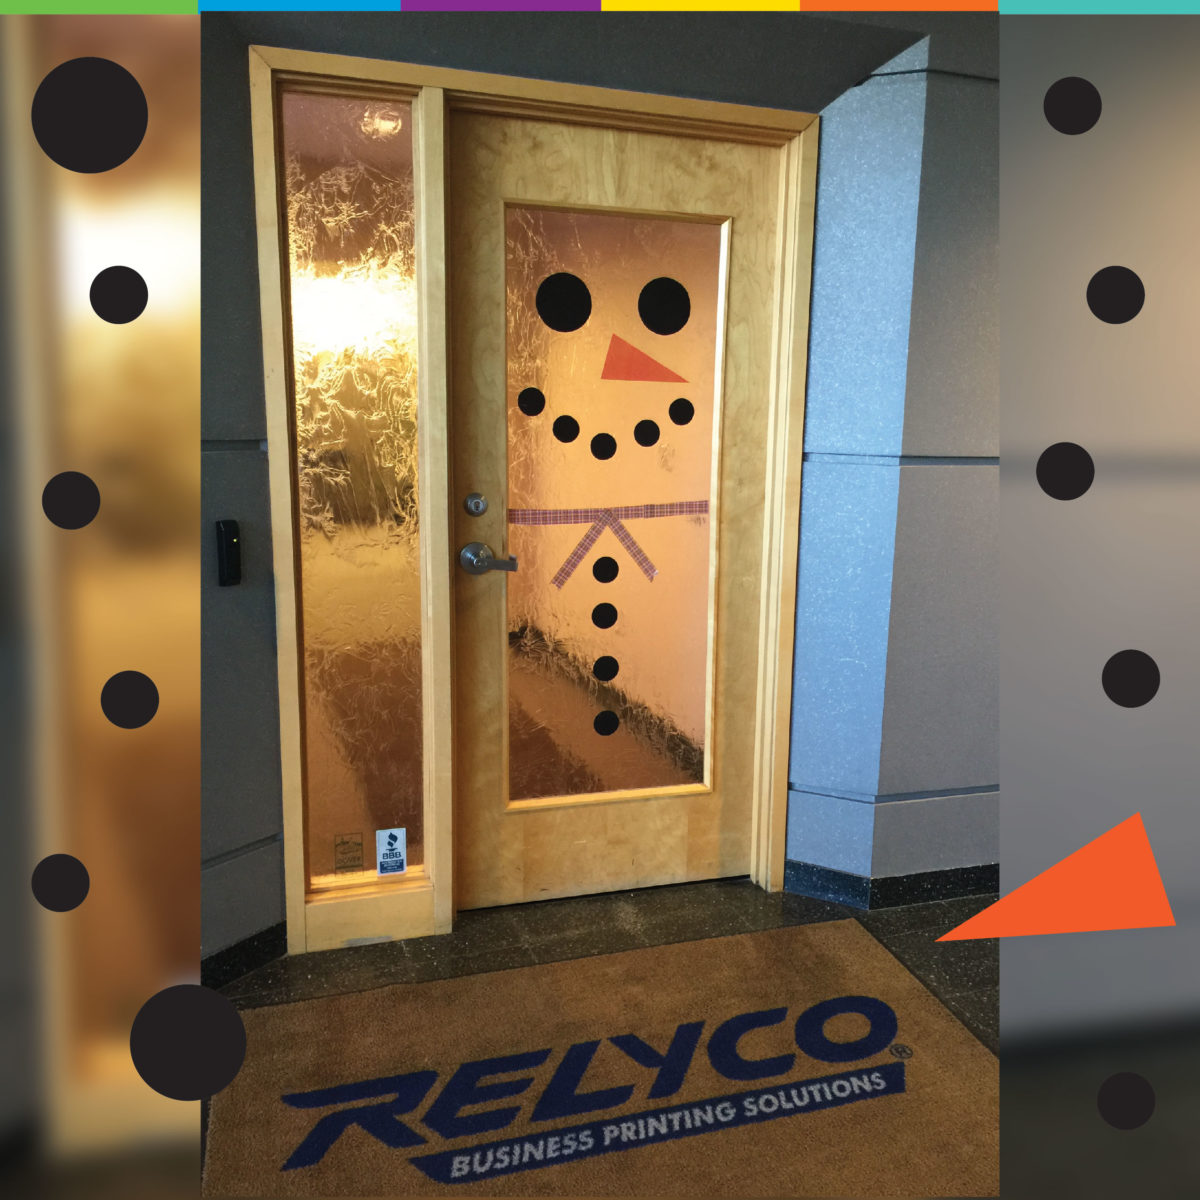 Frosty the Snow REVLAR Waterproof Labels Man Visits Relyco